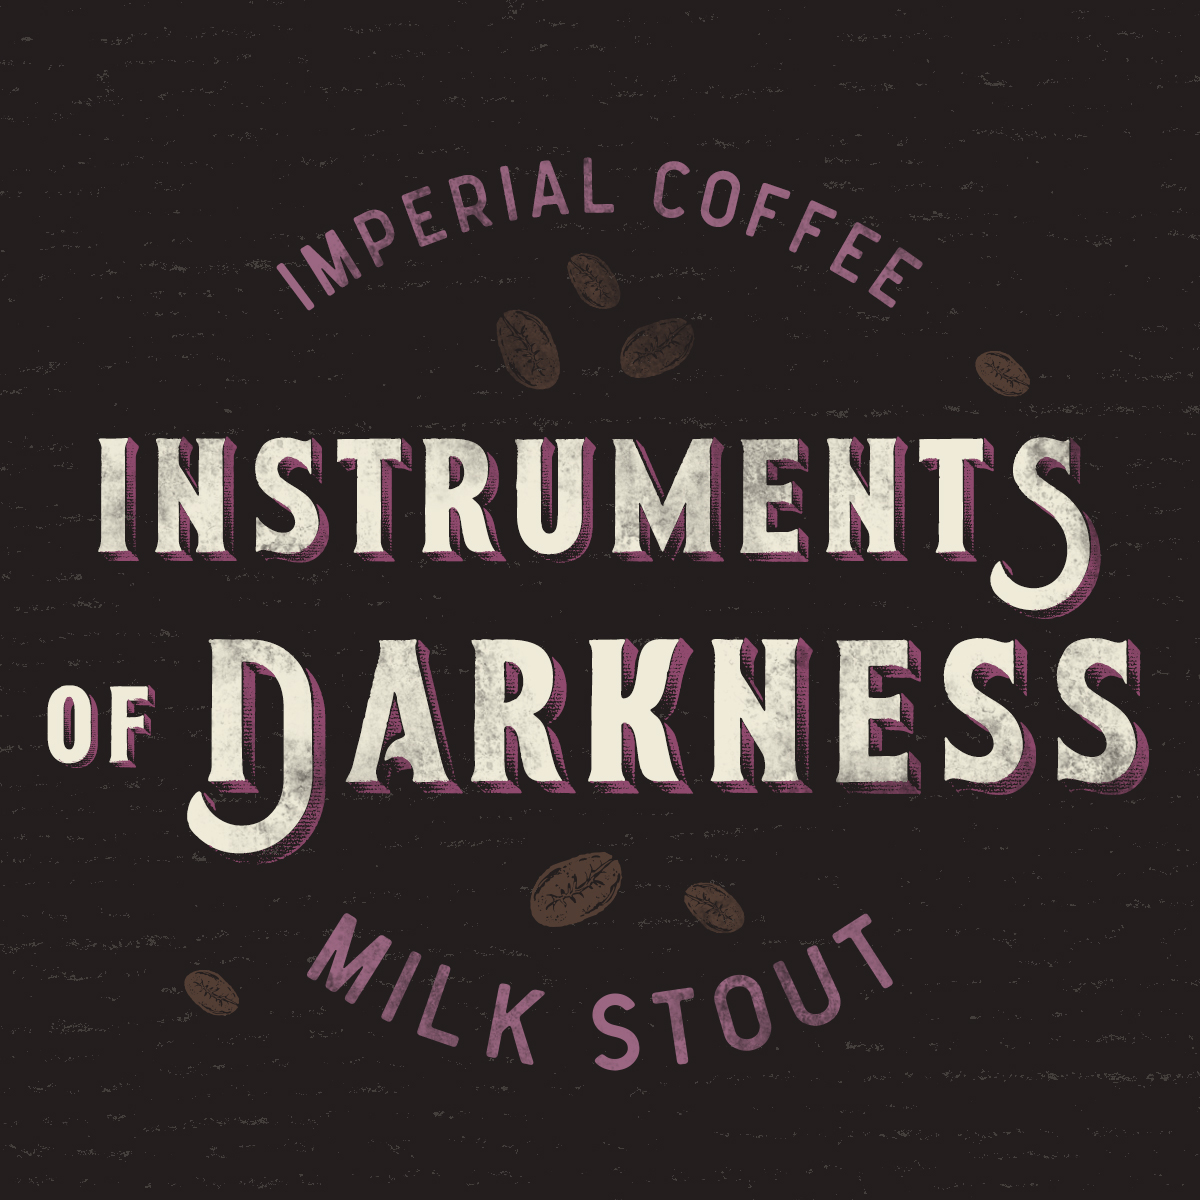 Instruments of Darkness Milk Stout